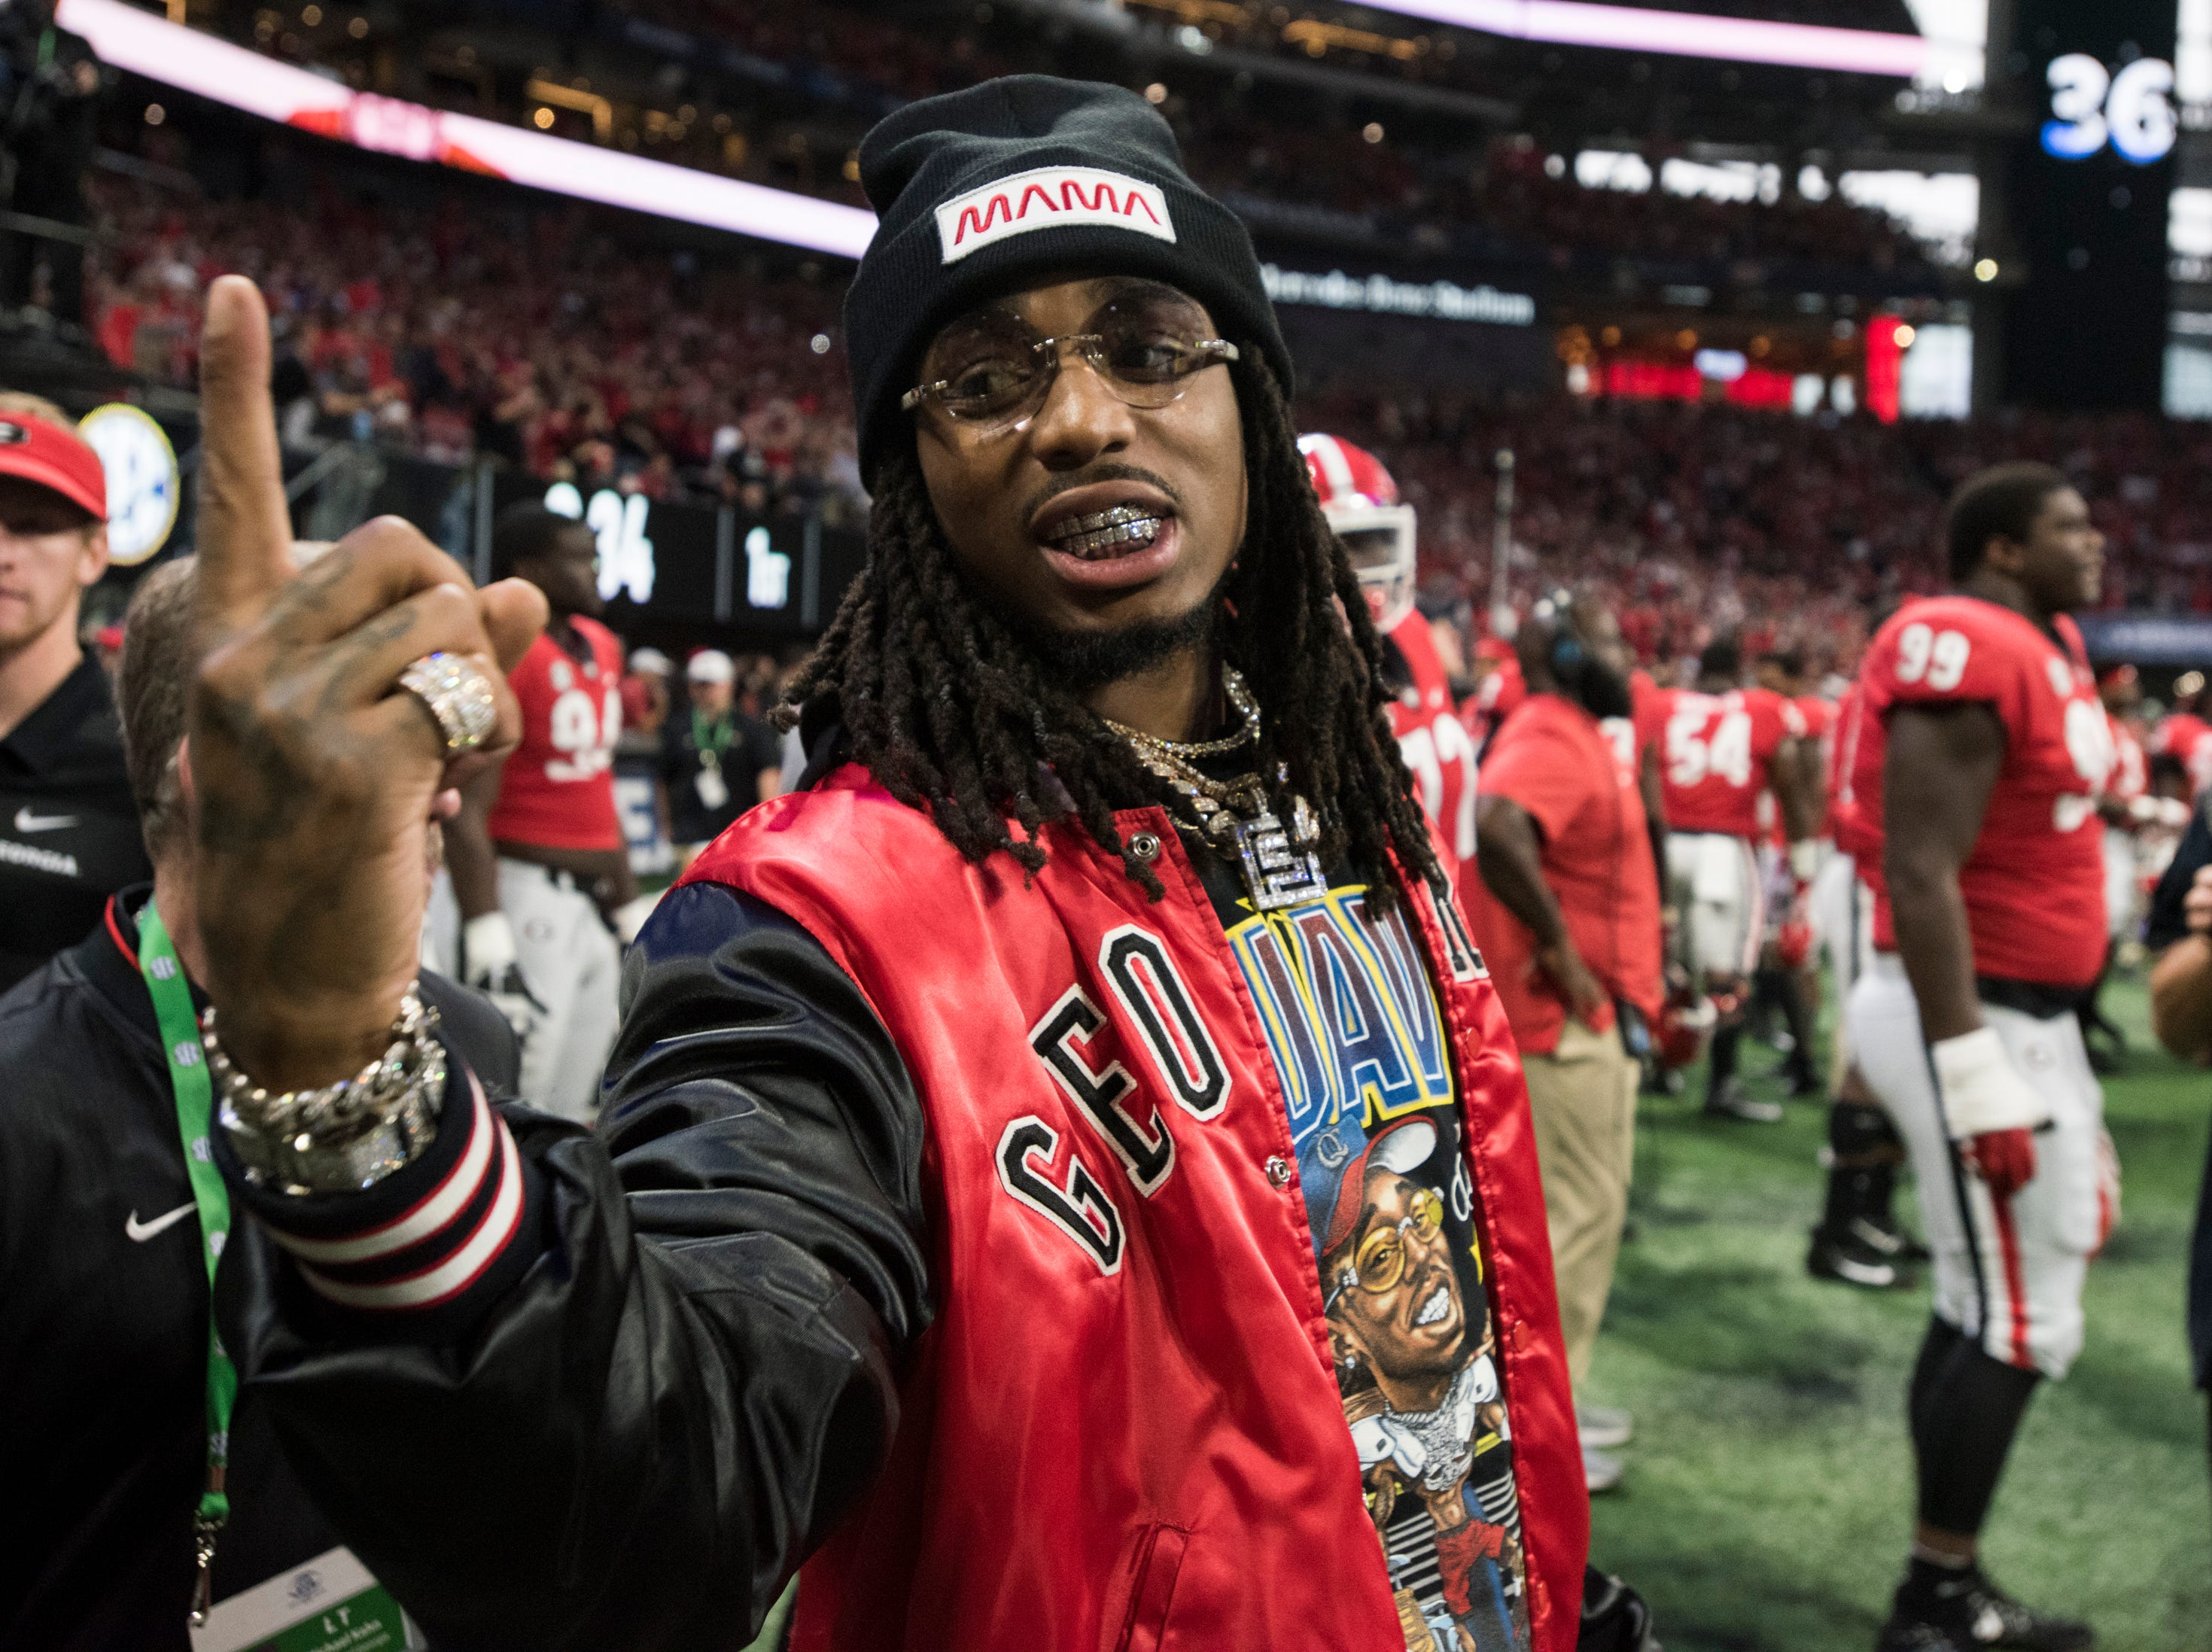 Rapper Quavo on the sideline during the SEC Championship game at Mercedes-Benz Stadium in Atlanta, Ga., on Saturday Dec. 1, 2018. Georgia leads Alabama 21-14 at halftime.